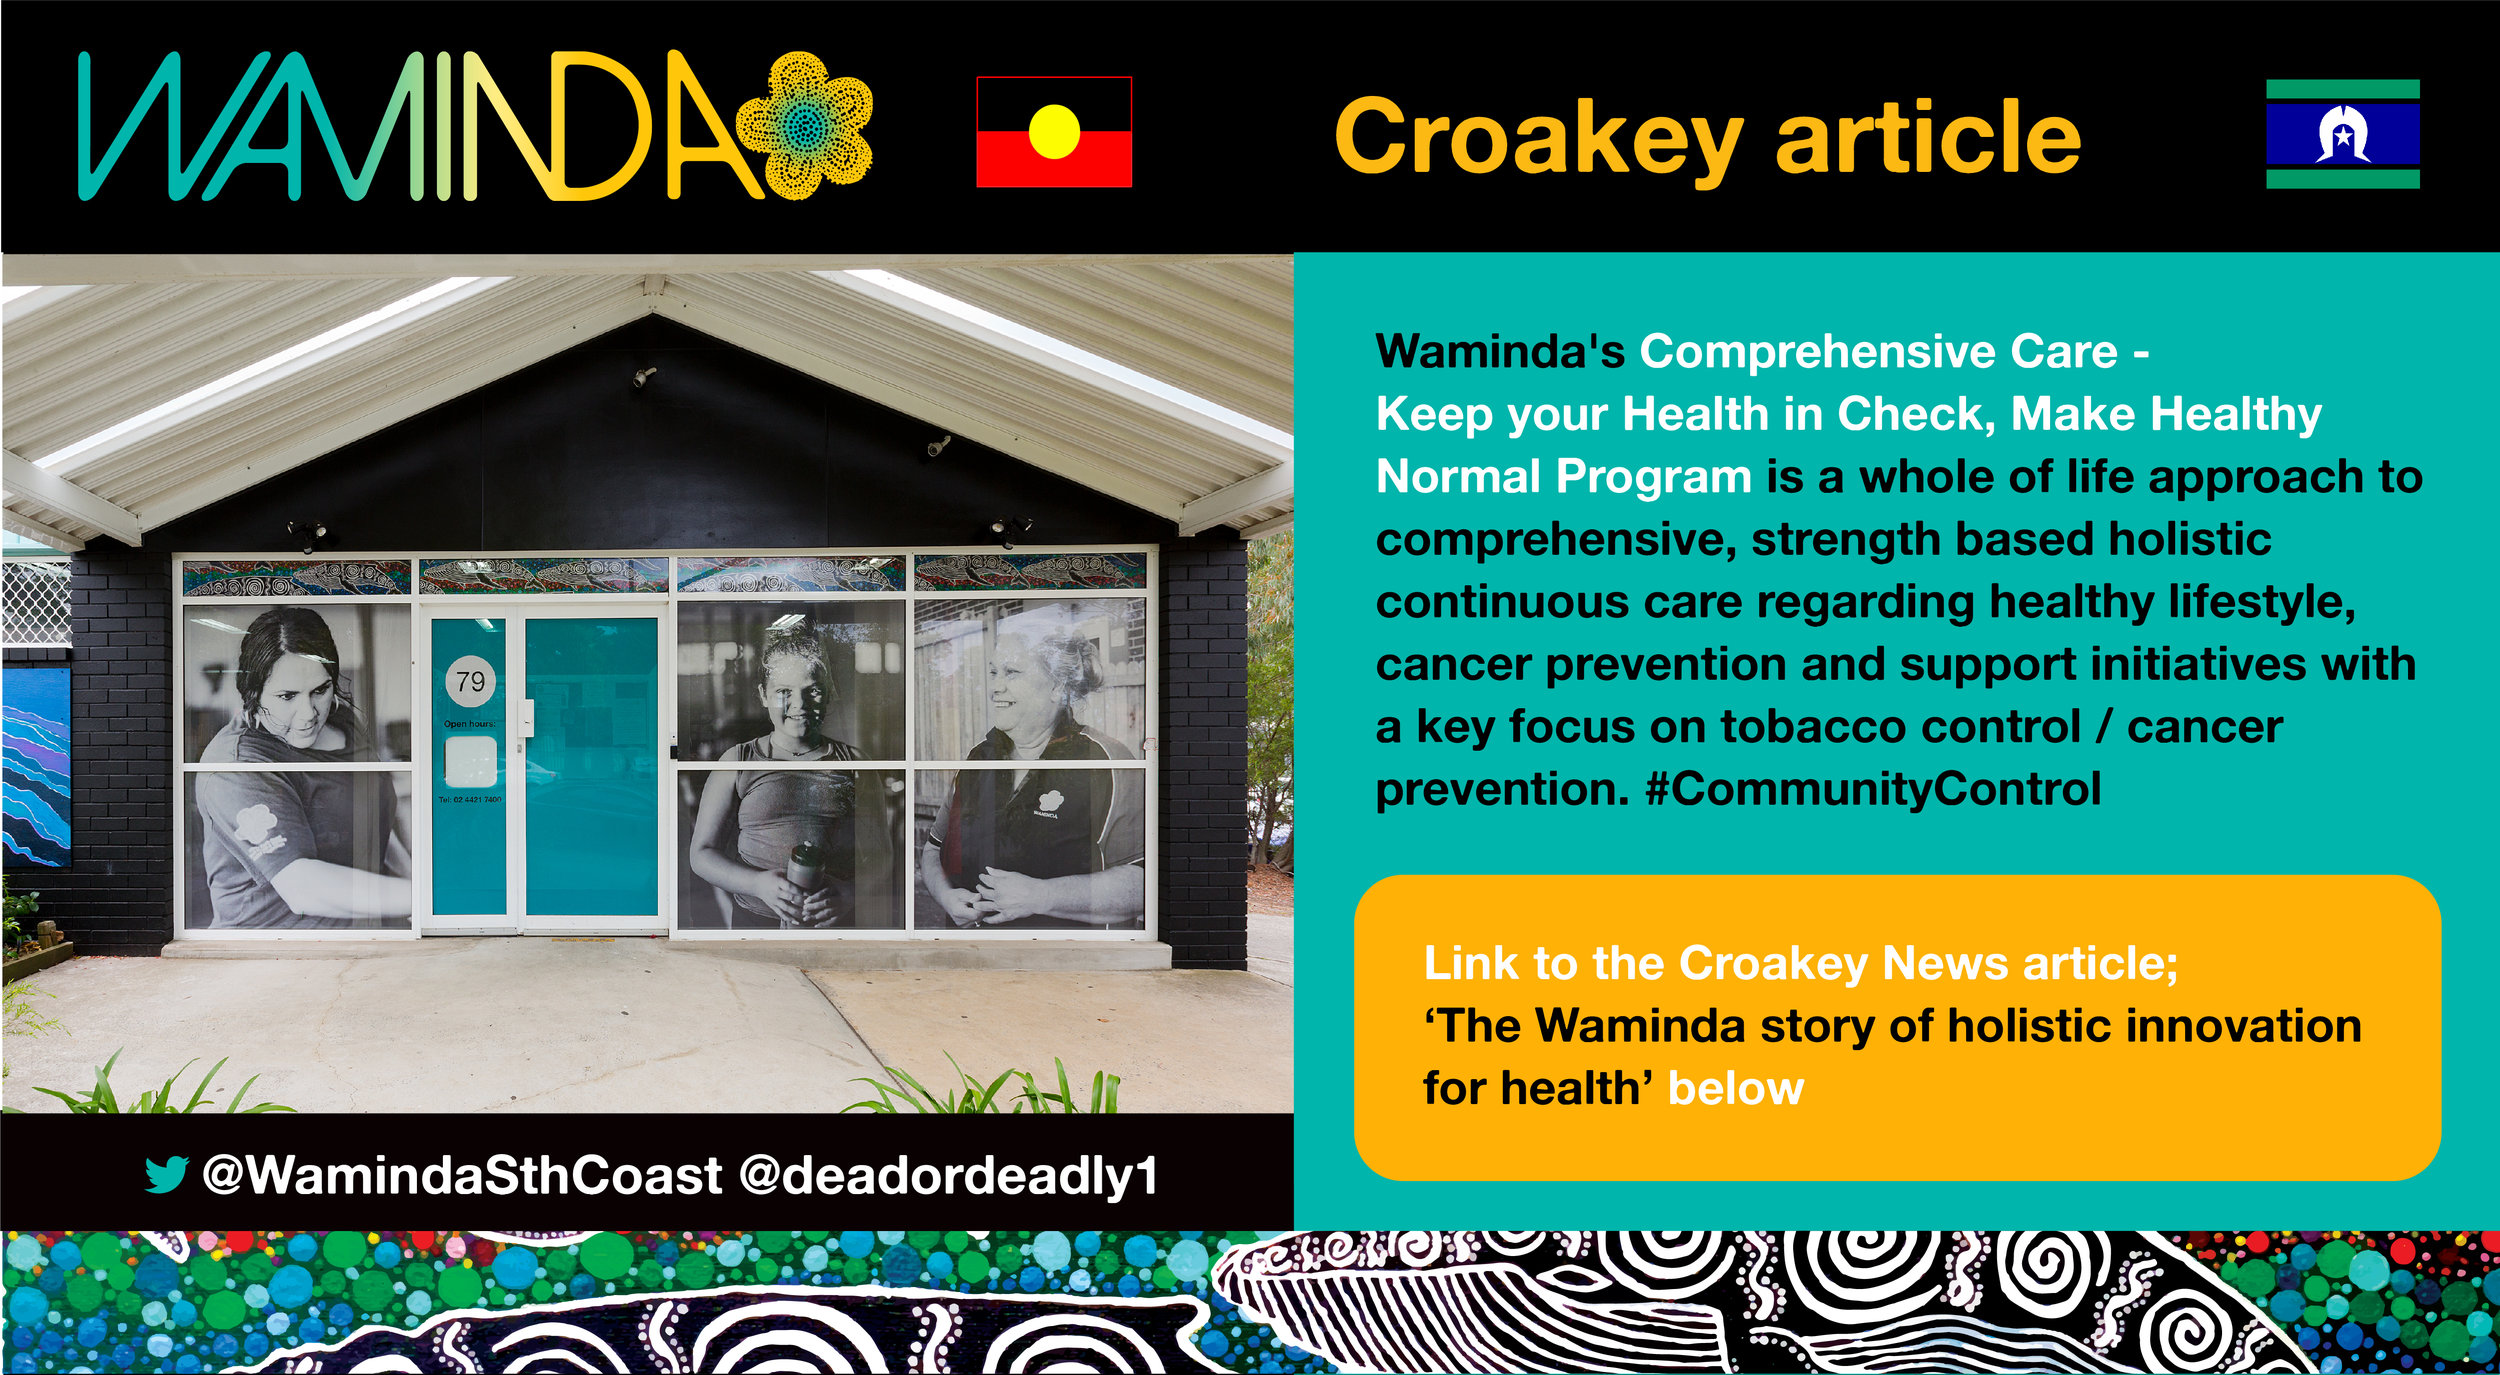 CLICK THIS LINK TO READ THE    CROAKEY NEWS ARTICLE